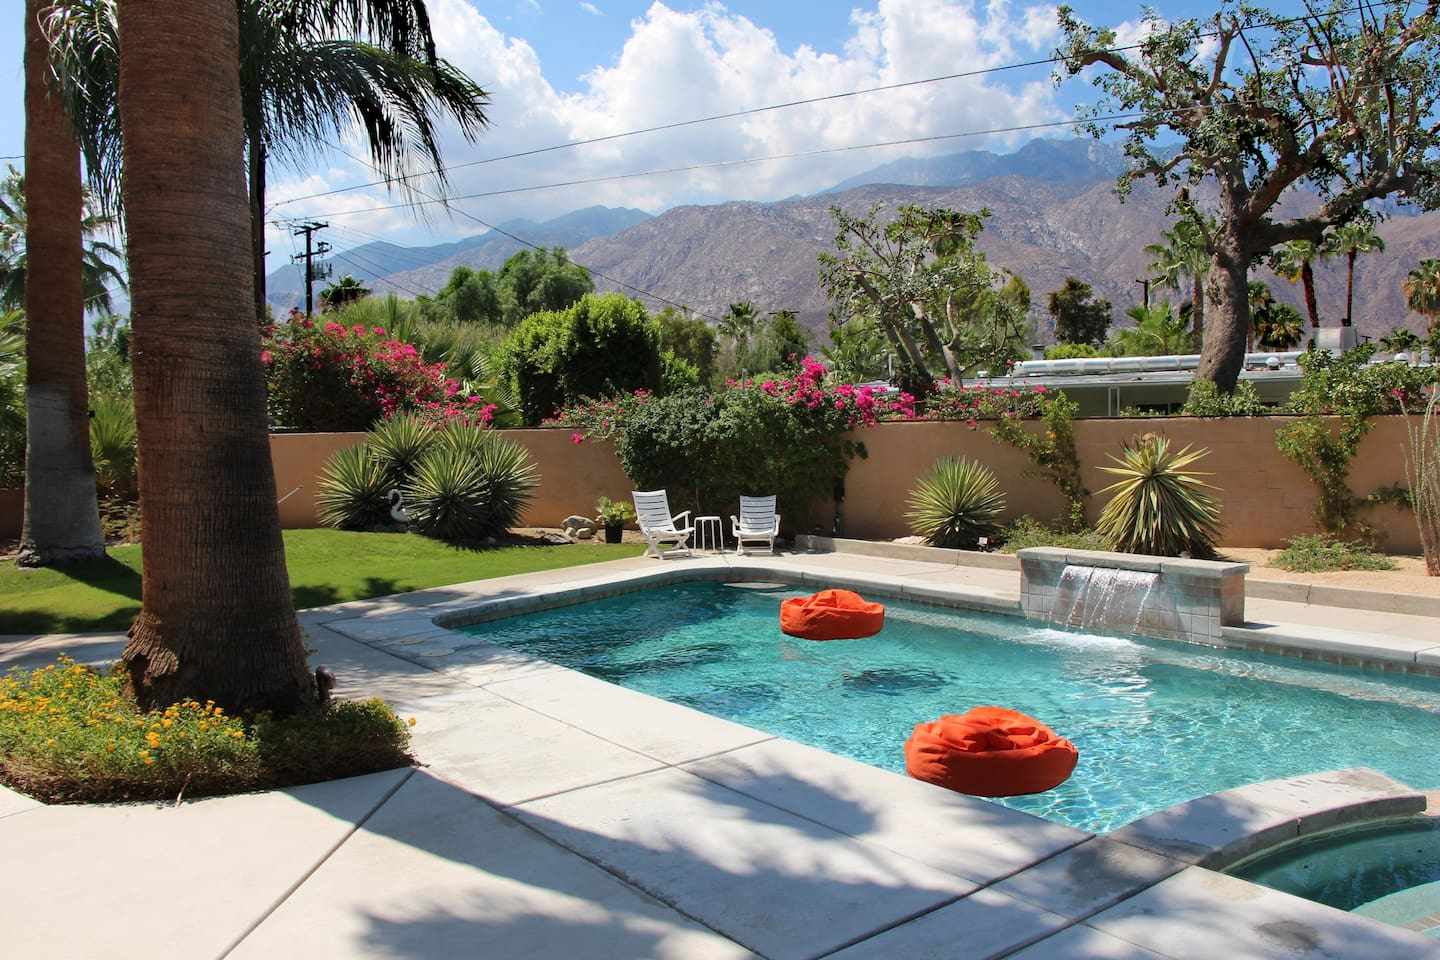 Enjoy the mountain views while floating on the pool beanbags, under the palms, drifting away to sounds of the waterfall.